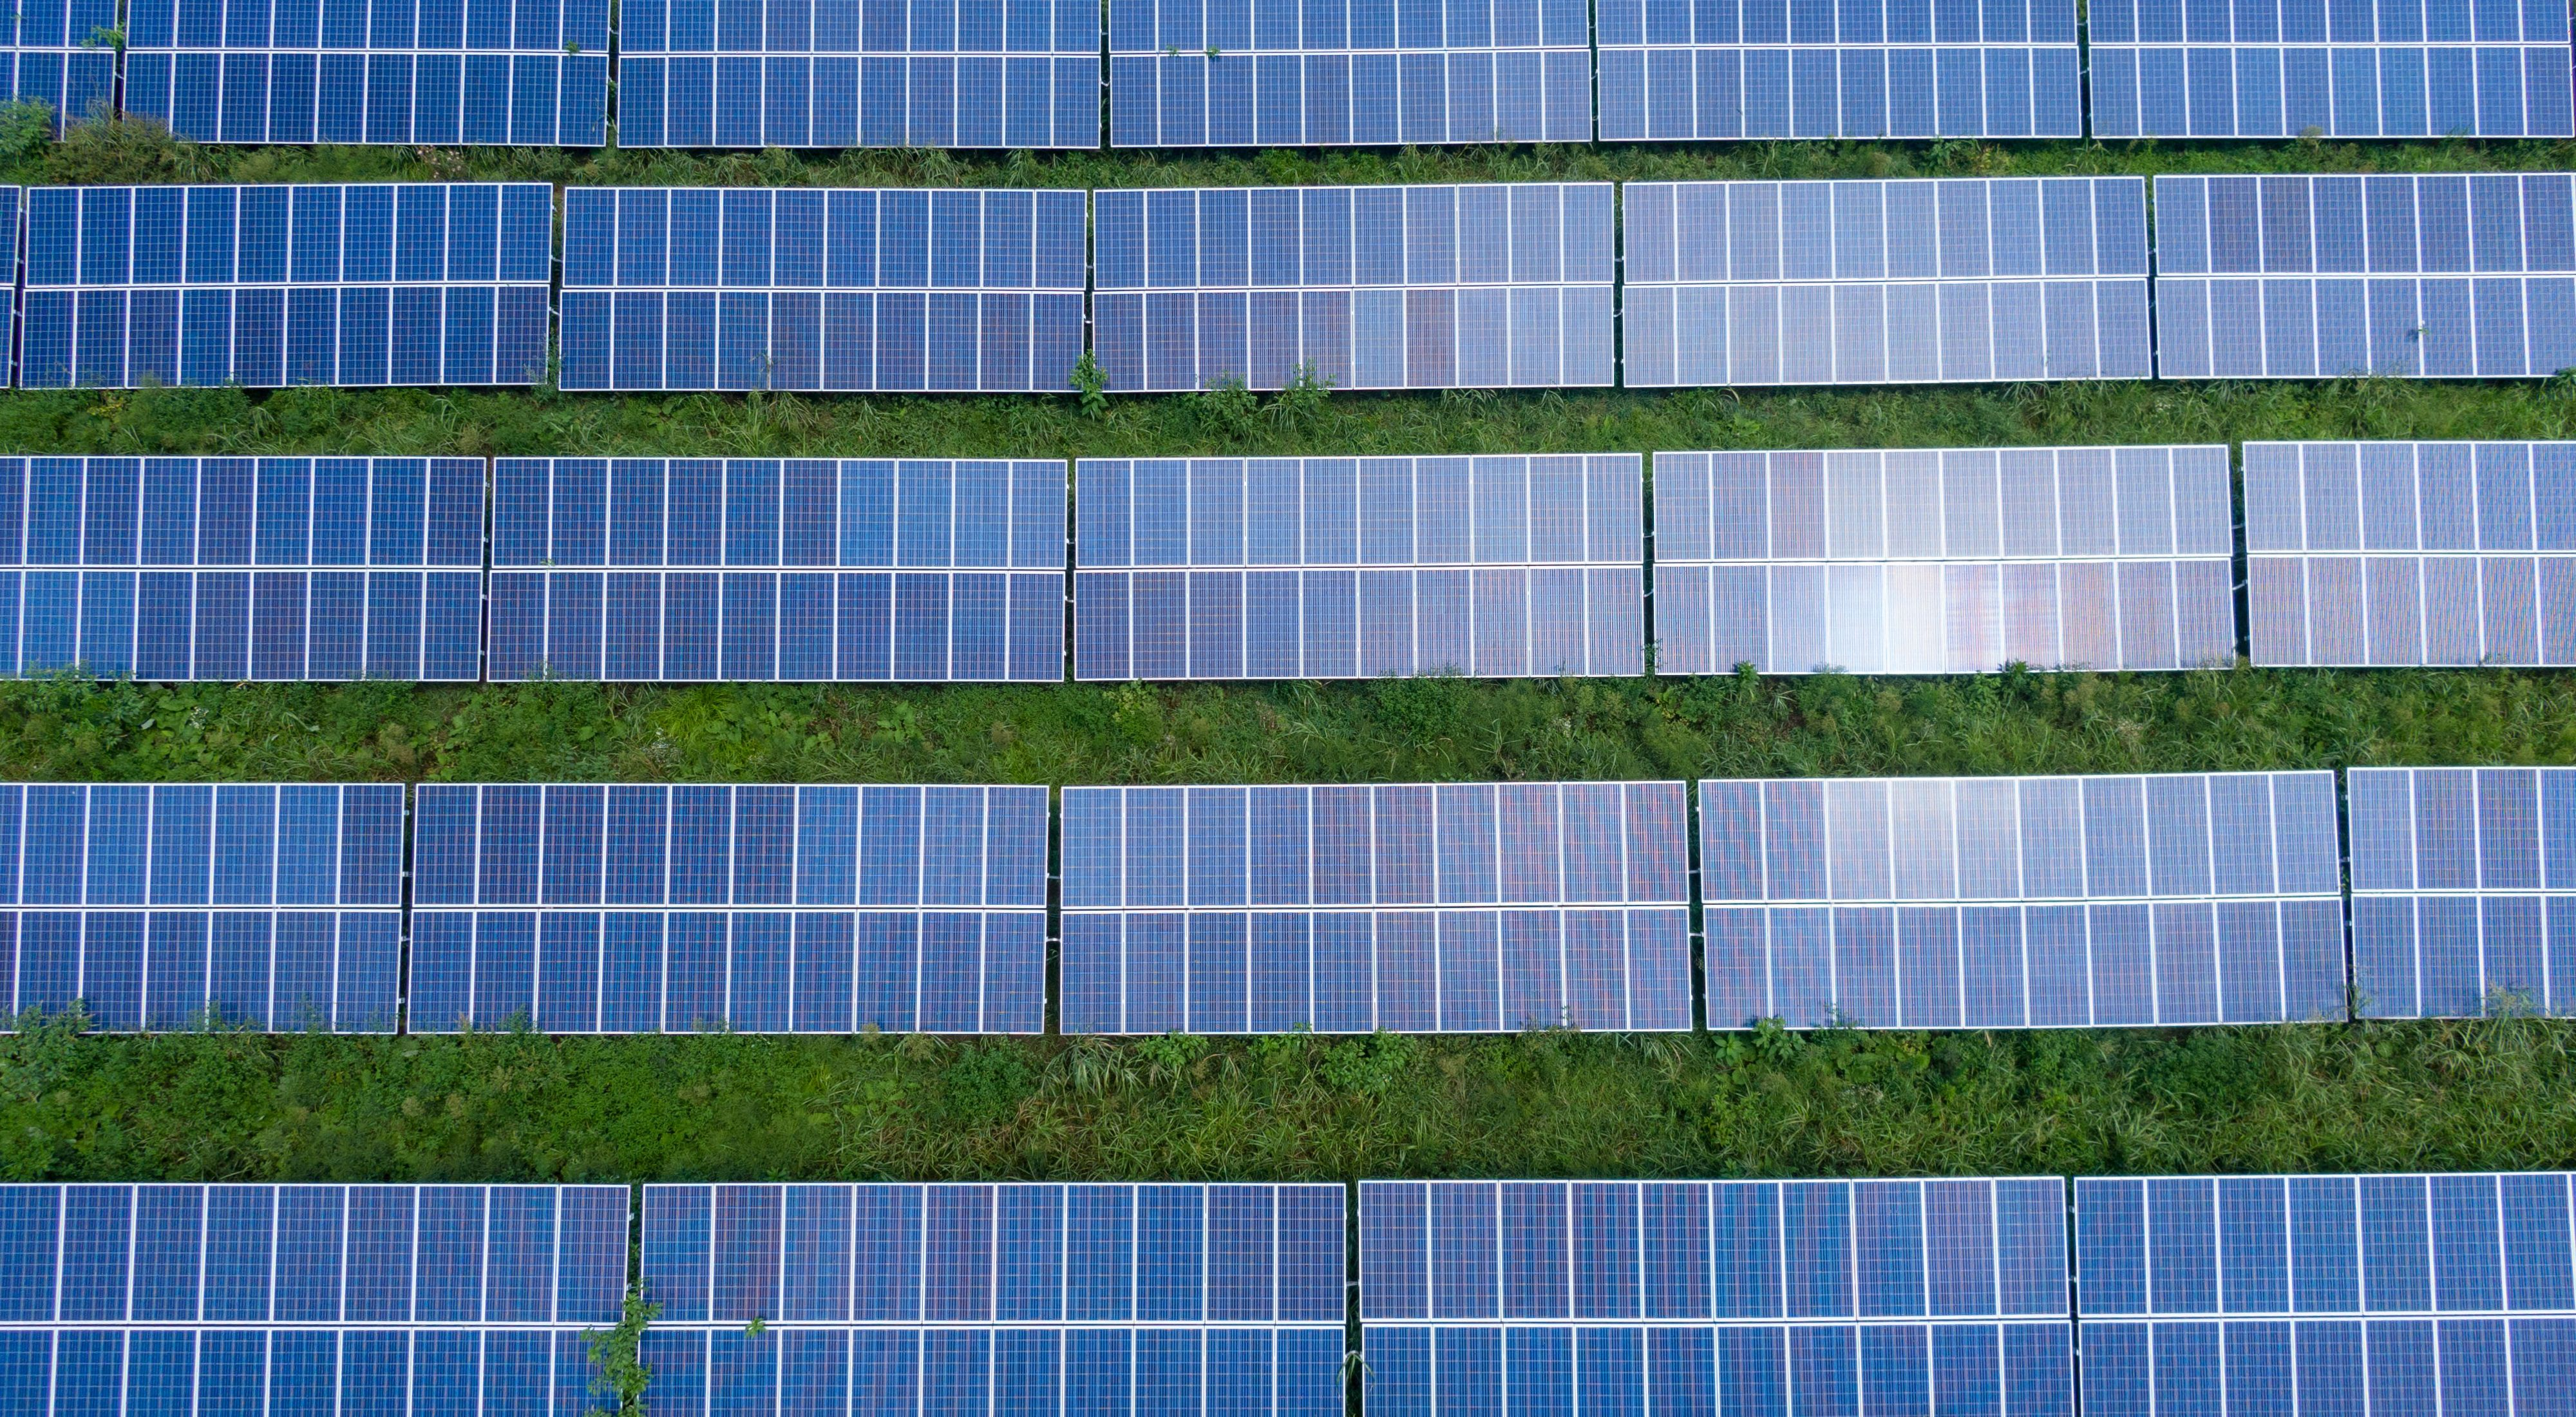 Aerial view of a row of five solar power arrays sitting atop a green grass field.